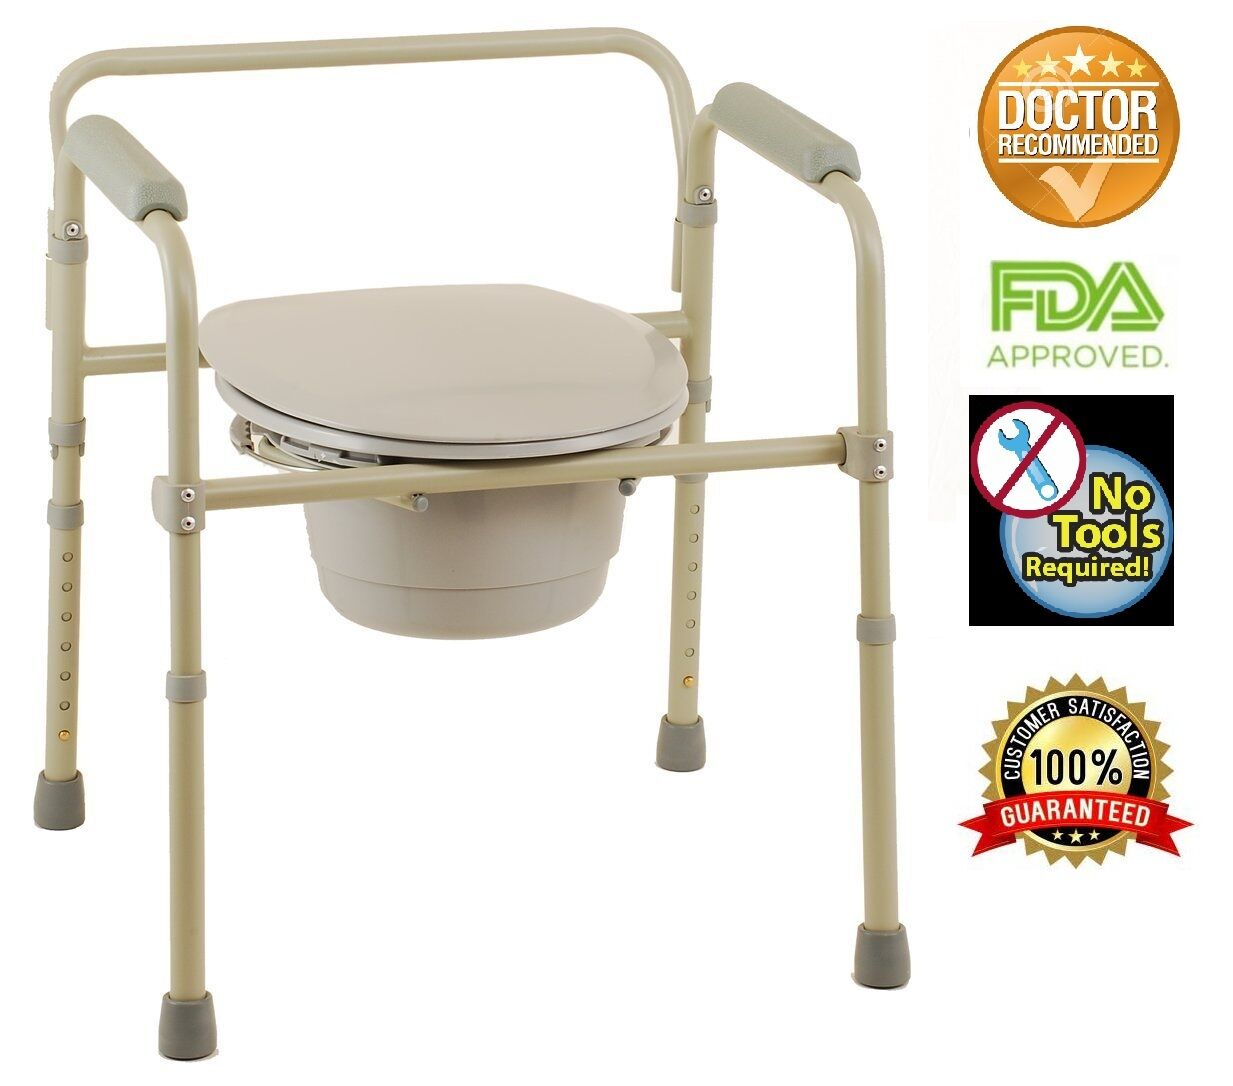 Adult Commode Chair Raised Over Toilet Seat Bedside Bathroom Potty ...